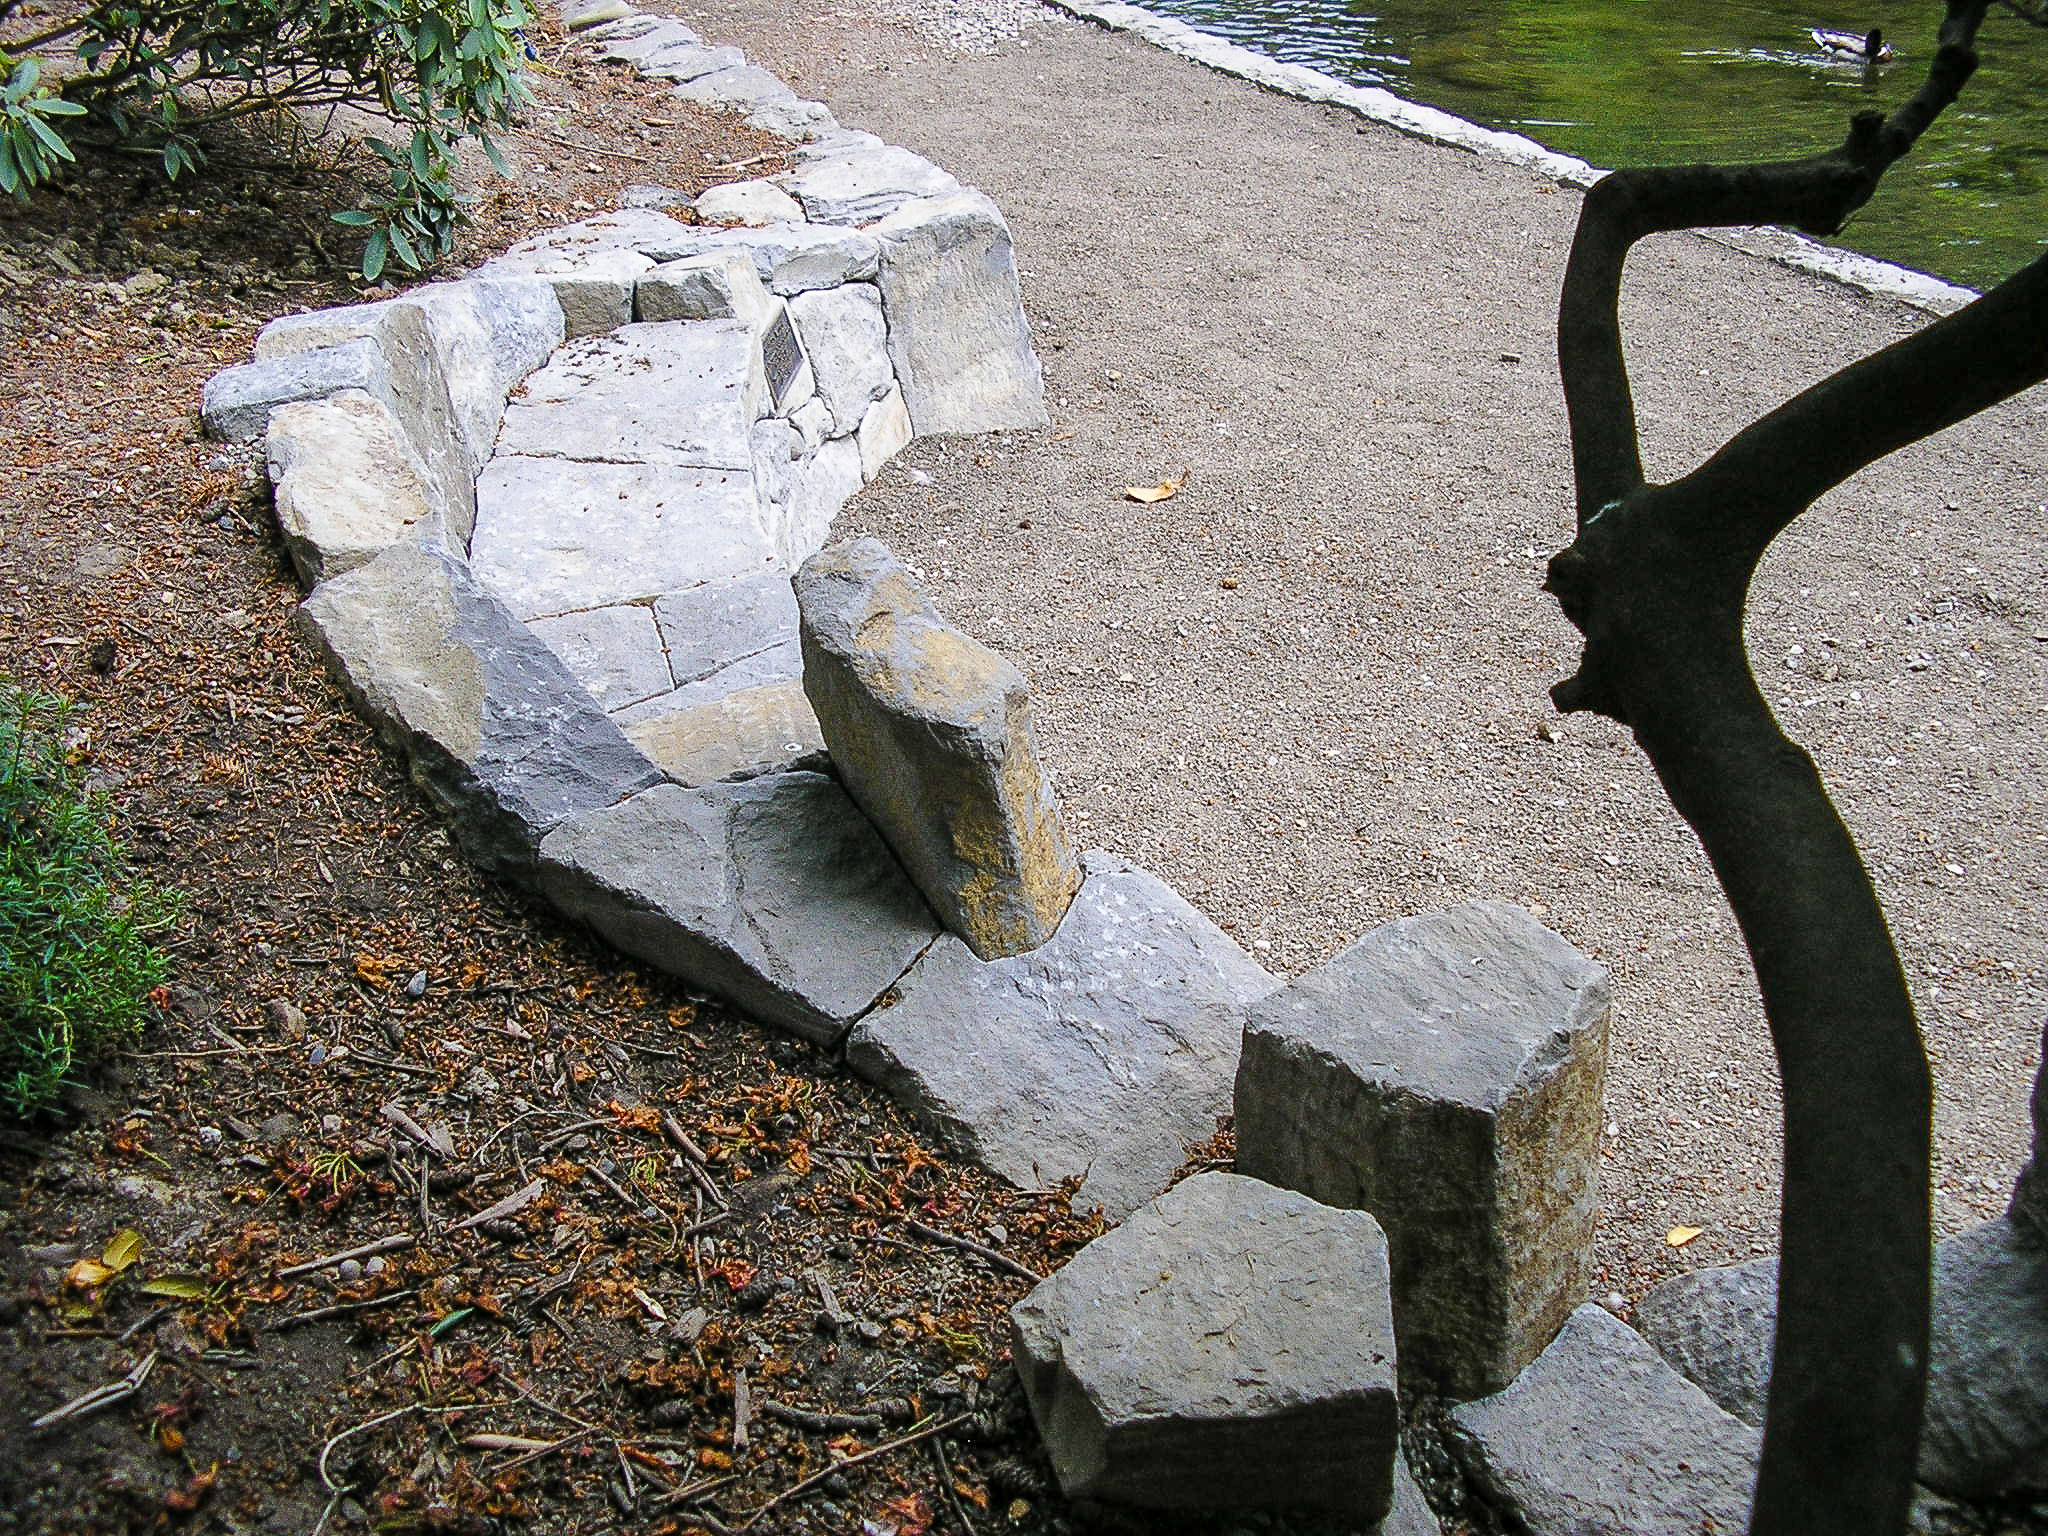 Eric Contey Stonework – Memorial viewing bench at the Rhododendron Gardens, Portland, OR